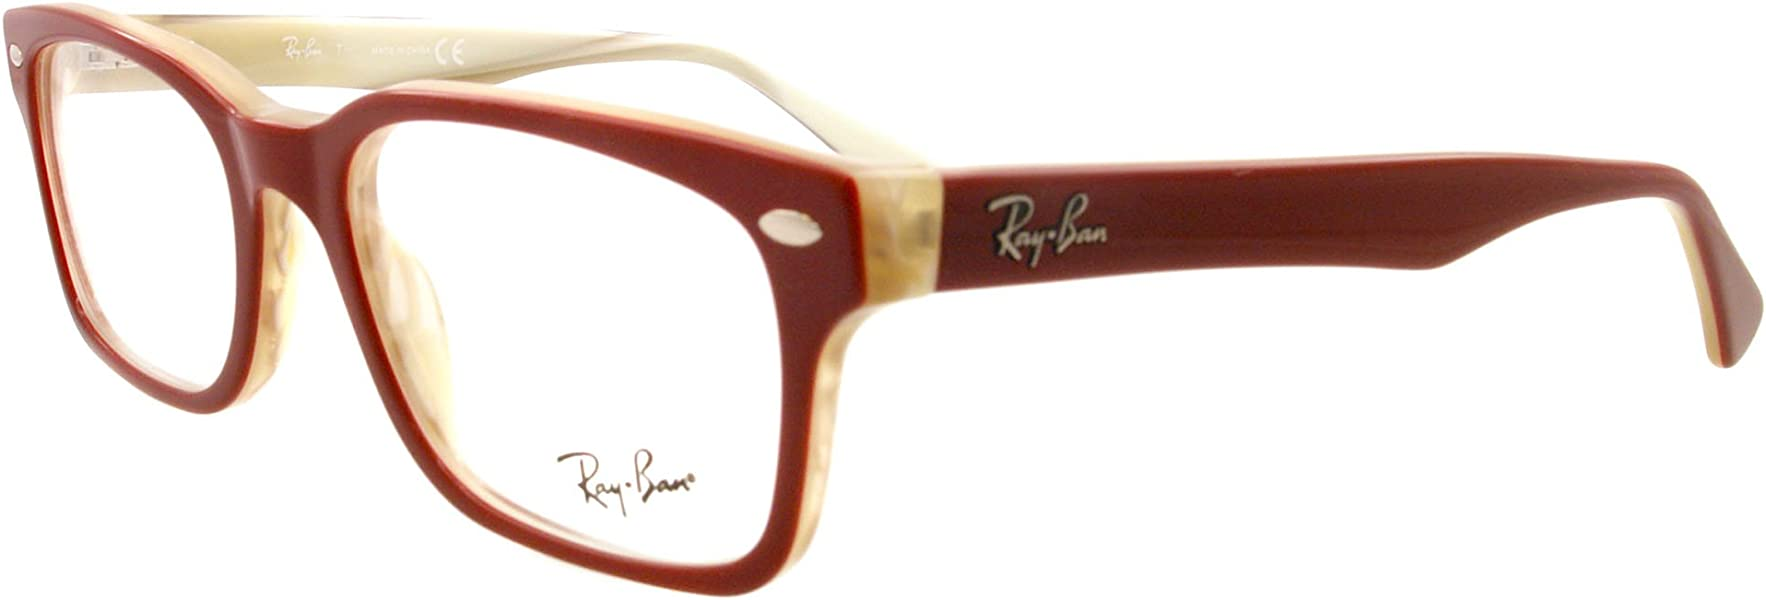 b62a07c4d60 Amazon.com  Ray-Ban Eyeglasses RB 5286 RED 5152  Ray-Ban  Shoes